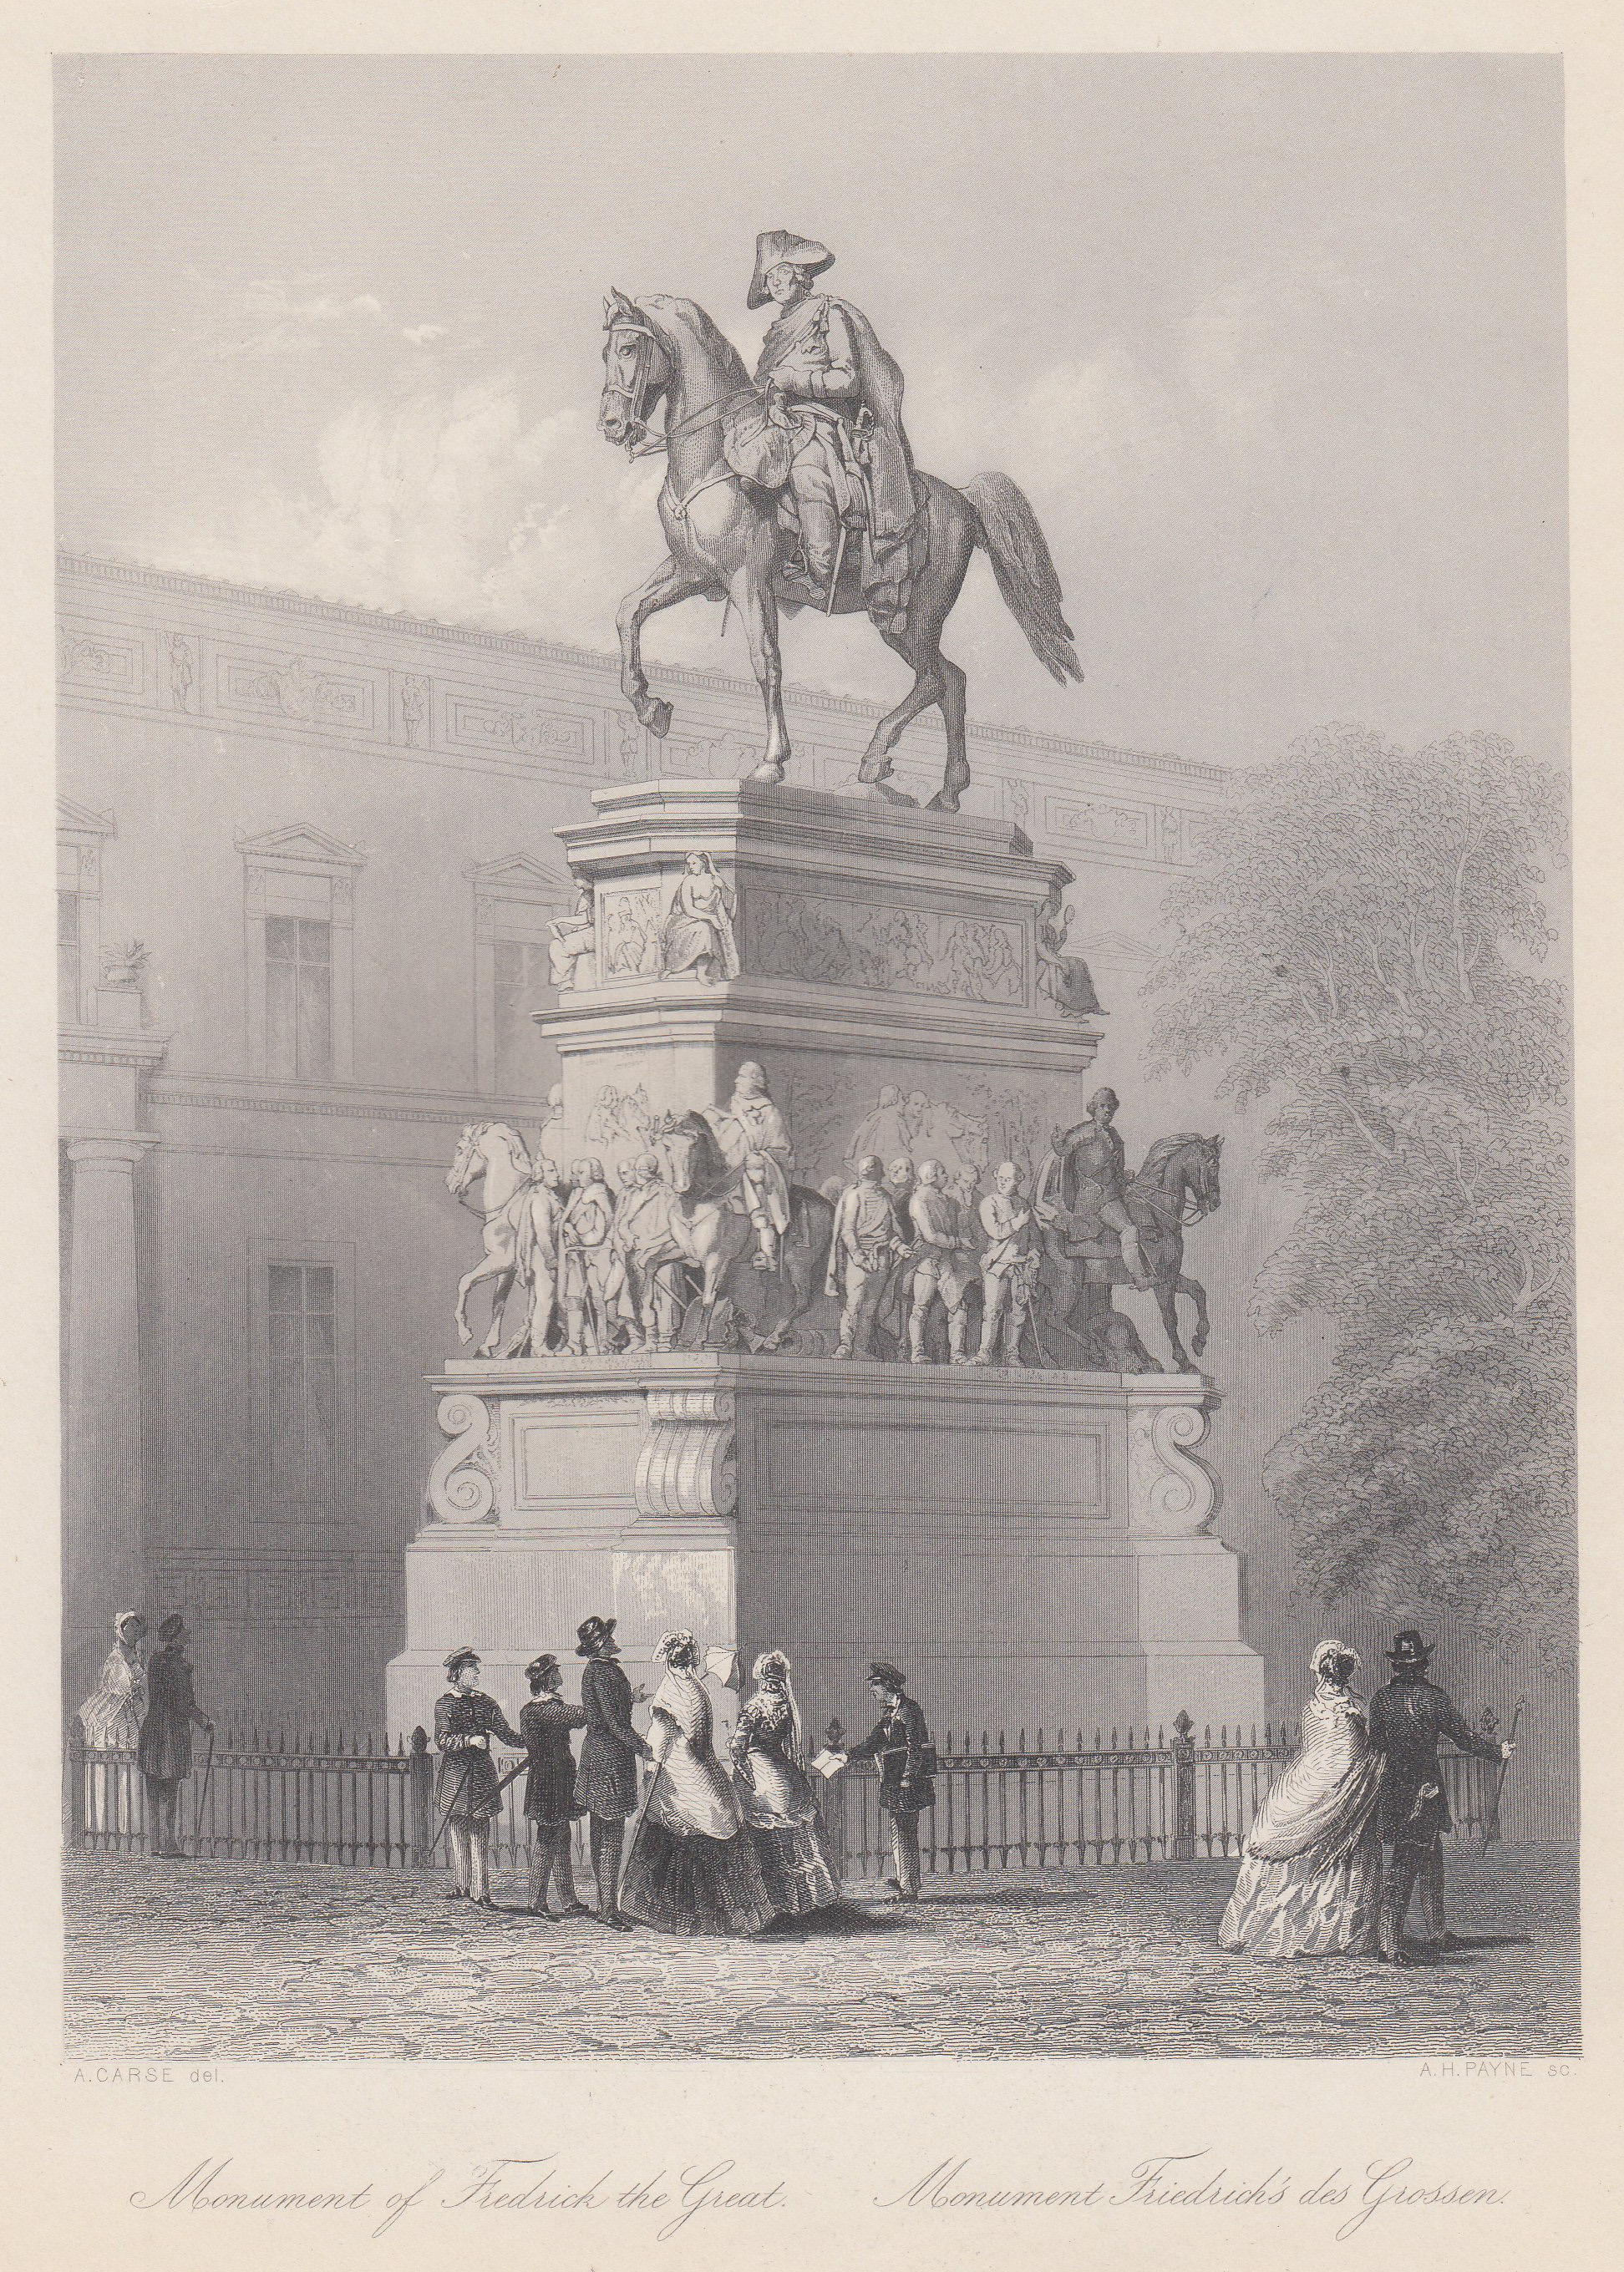 Monument of Fredrick the Great. Monument Friedrich's: Berlin - Denkmäler: